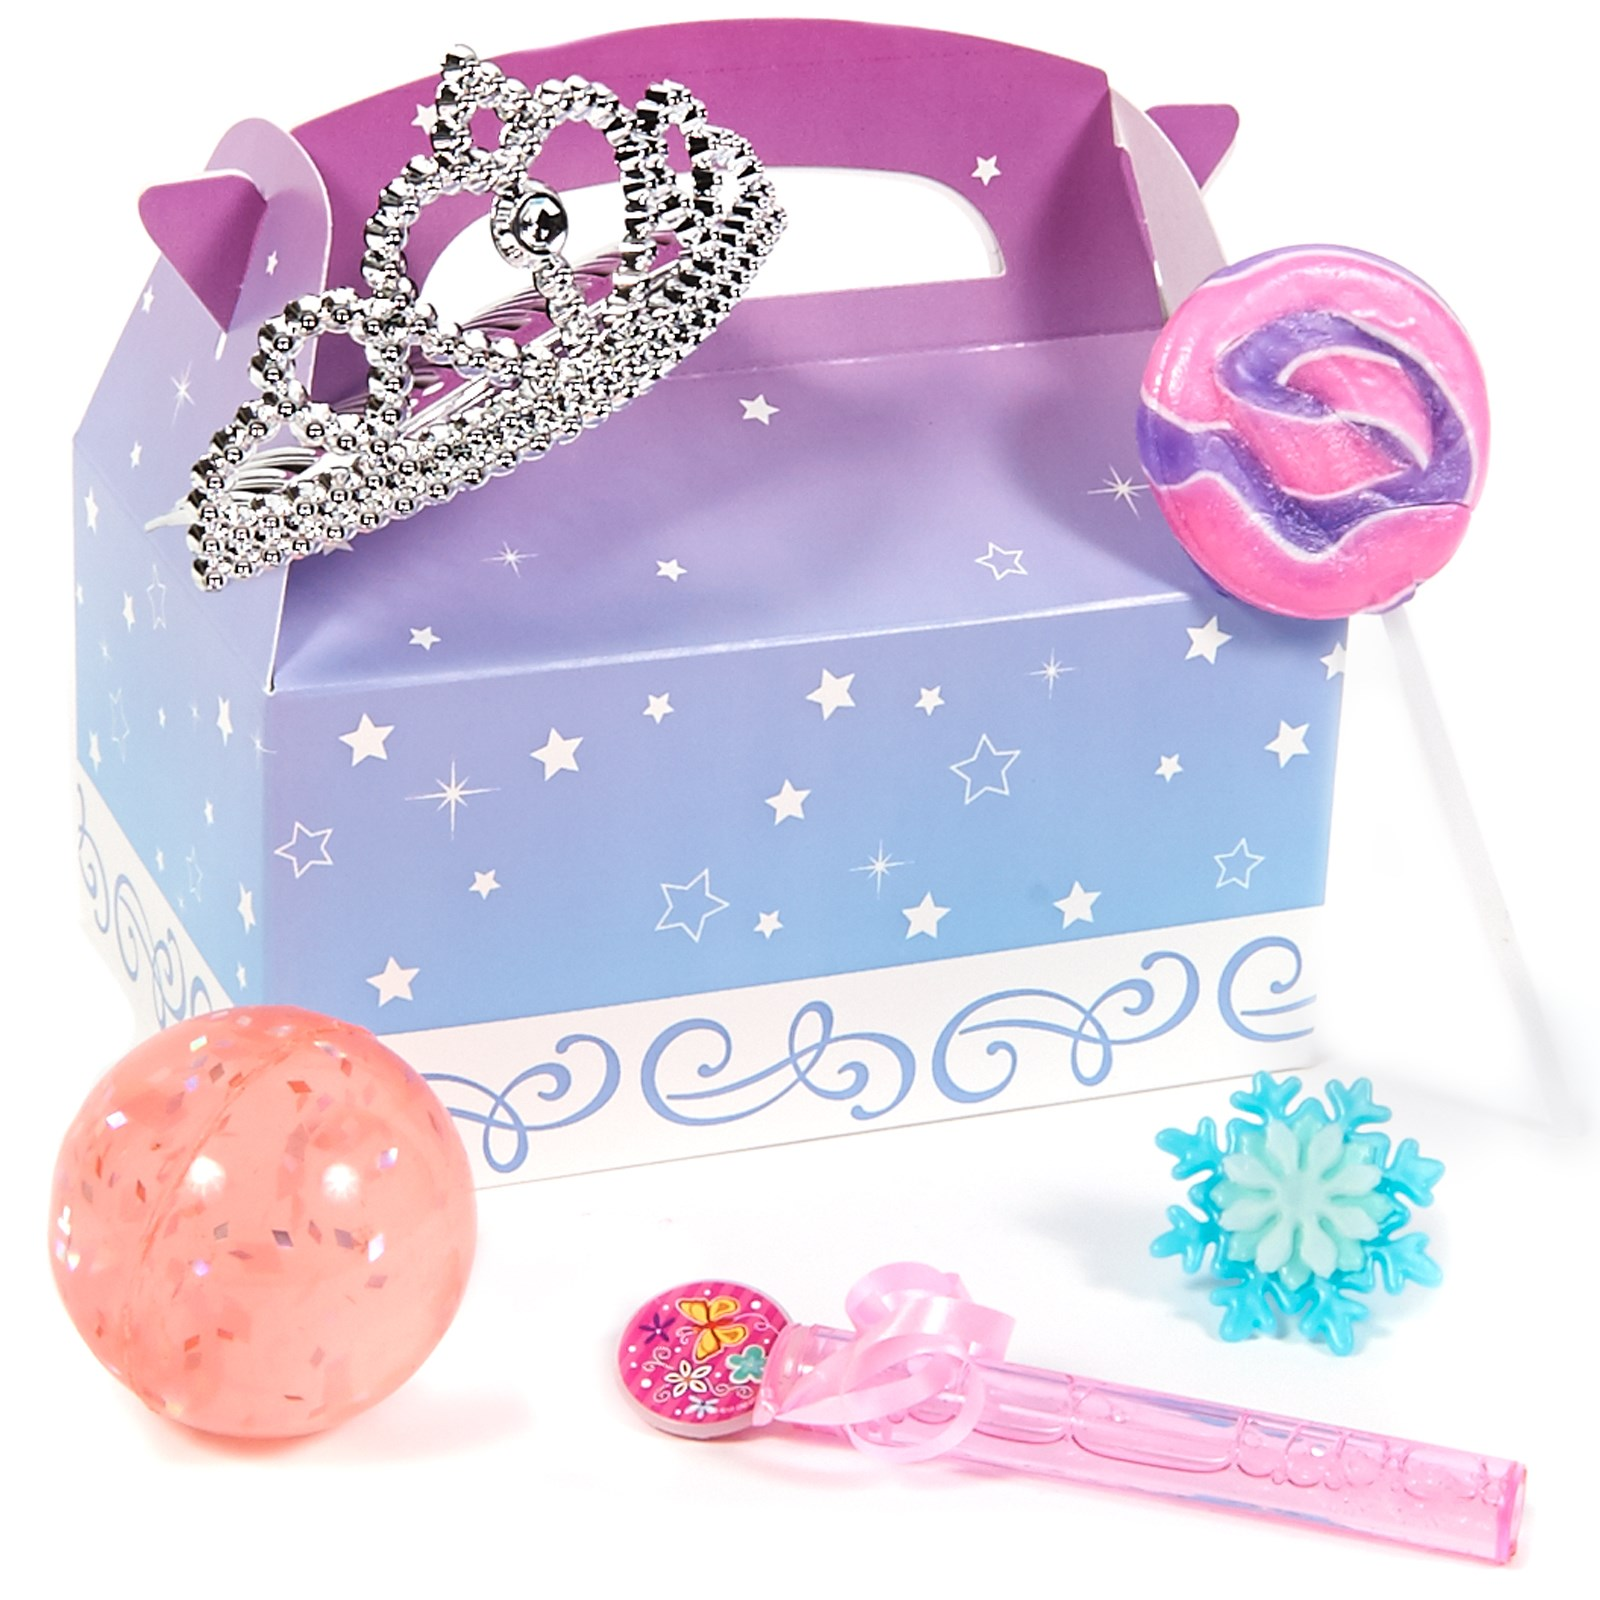 Disney Frozen party supplies favor box